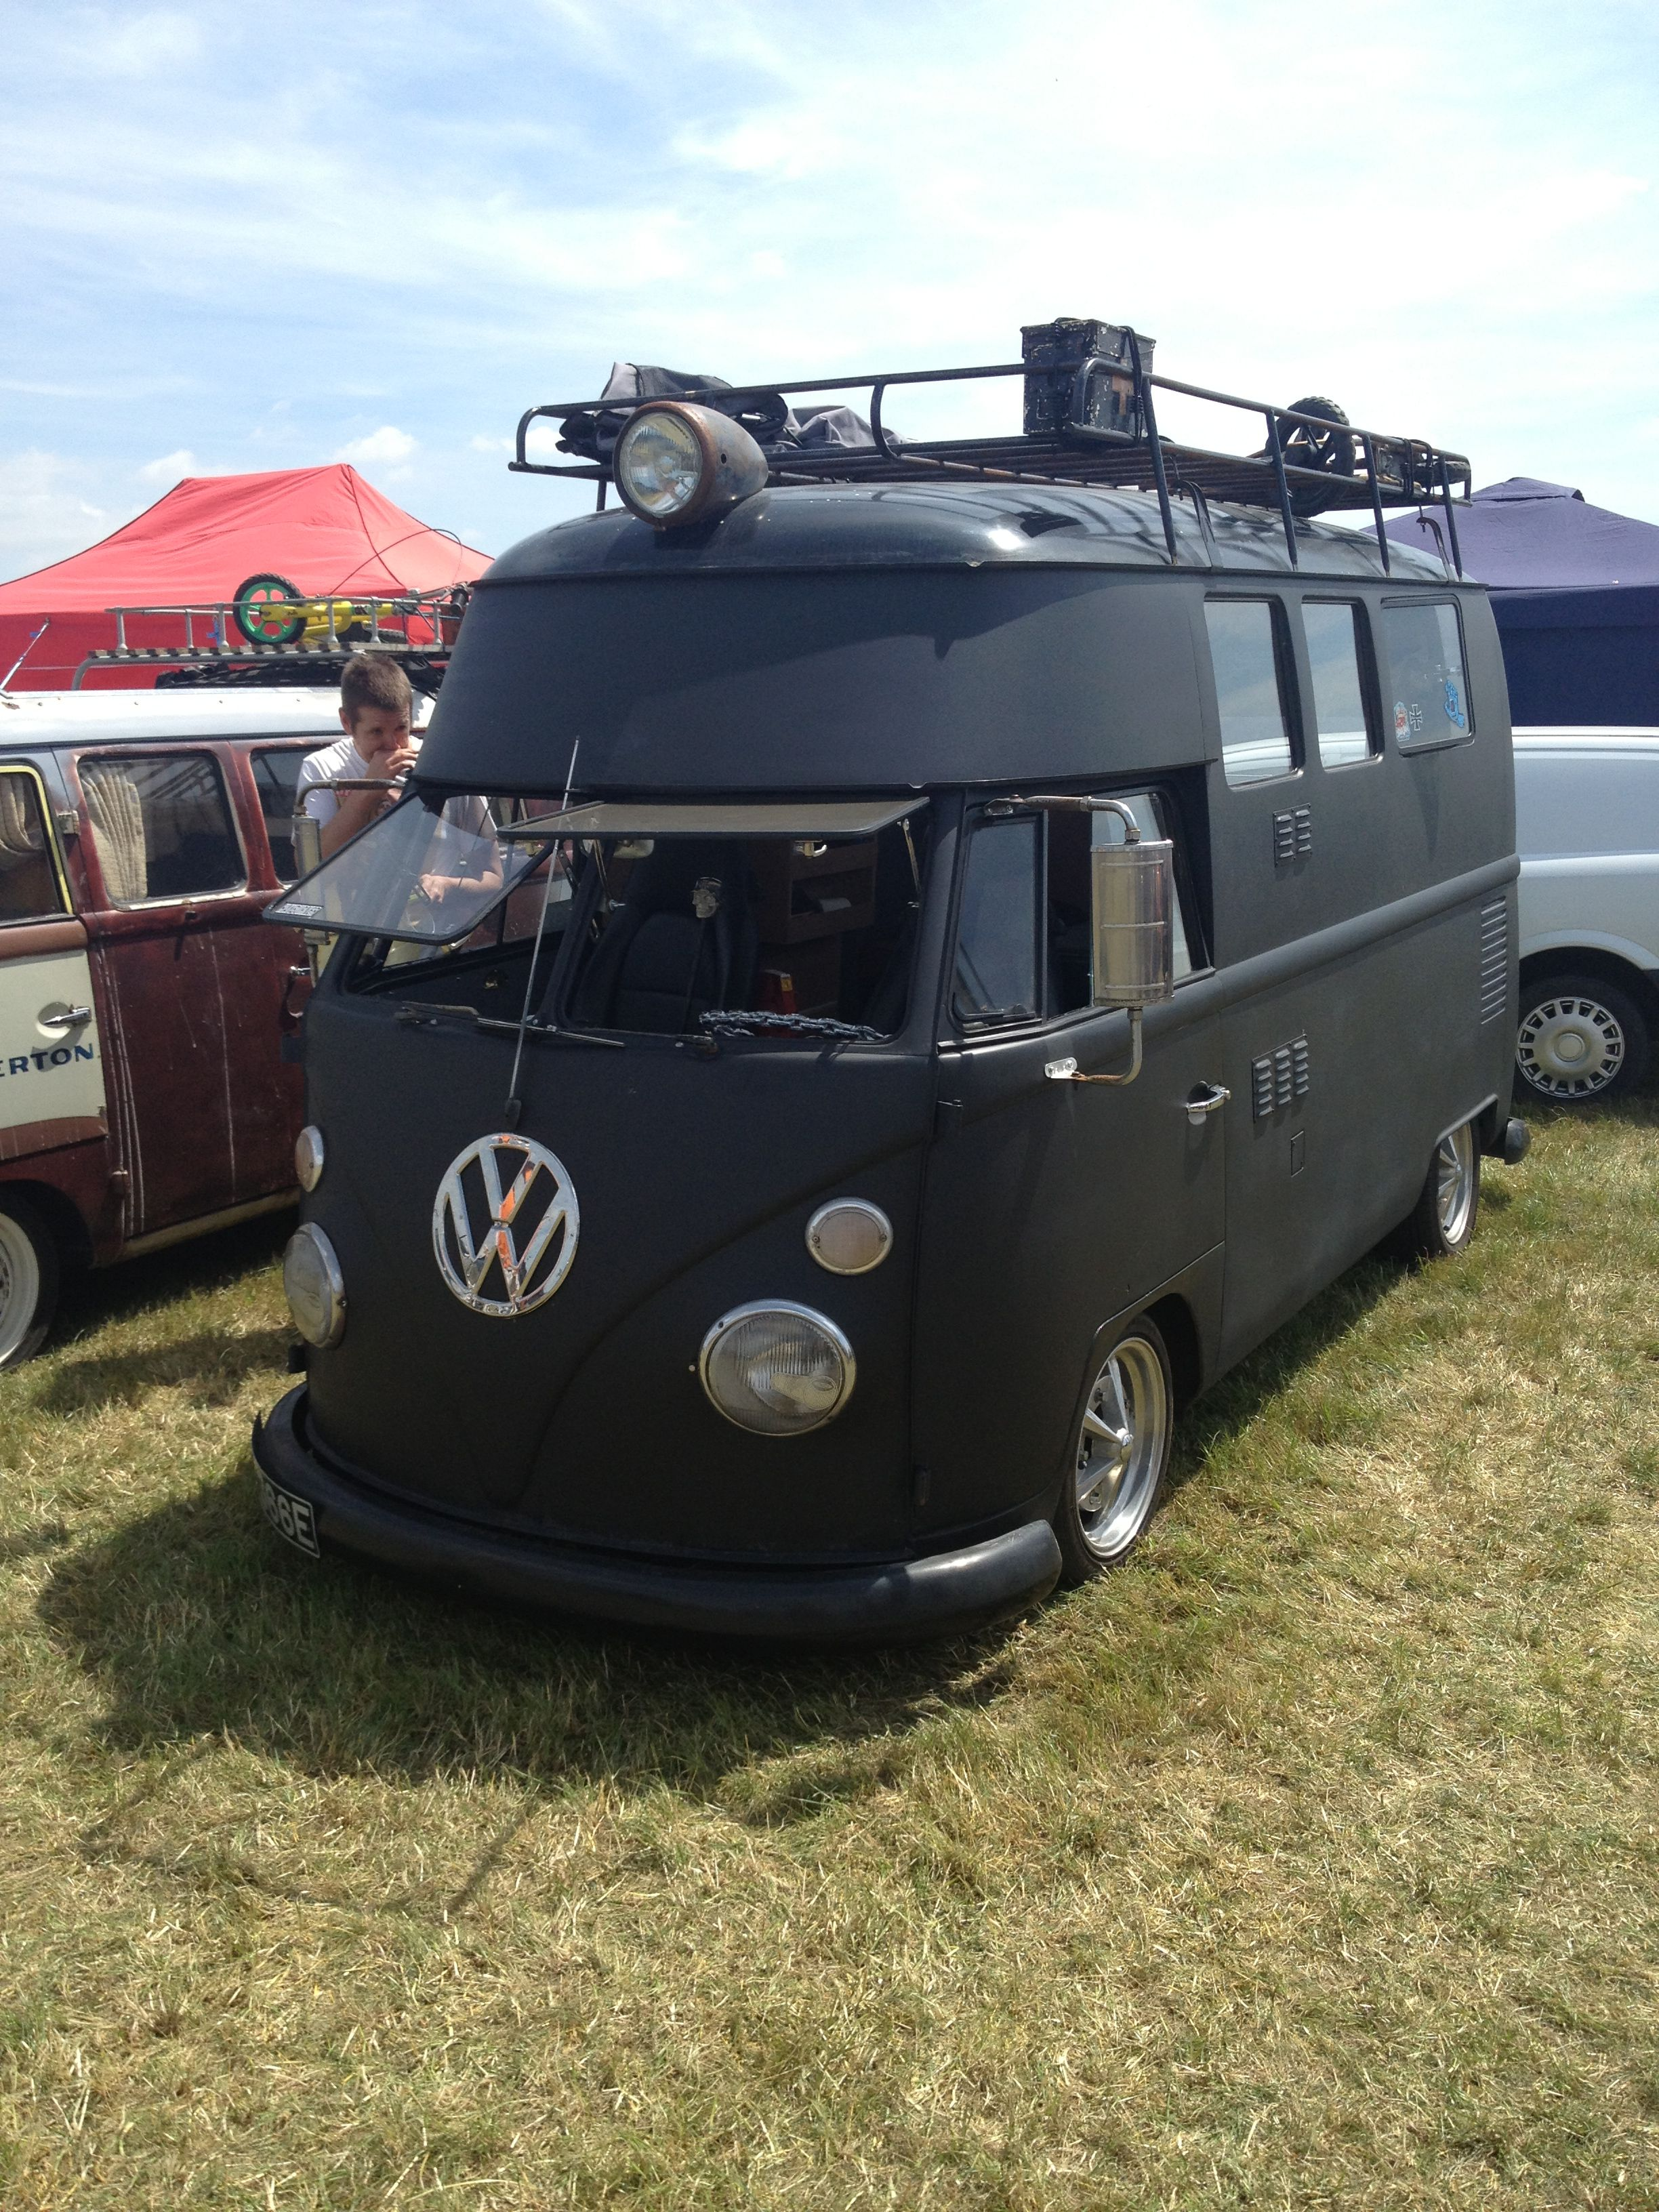 Really nice Custom Built Split Screen at Manningtree Car Show